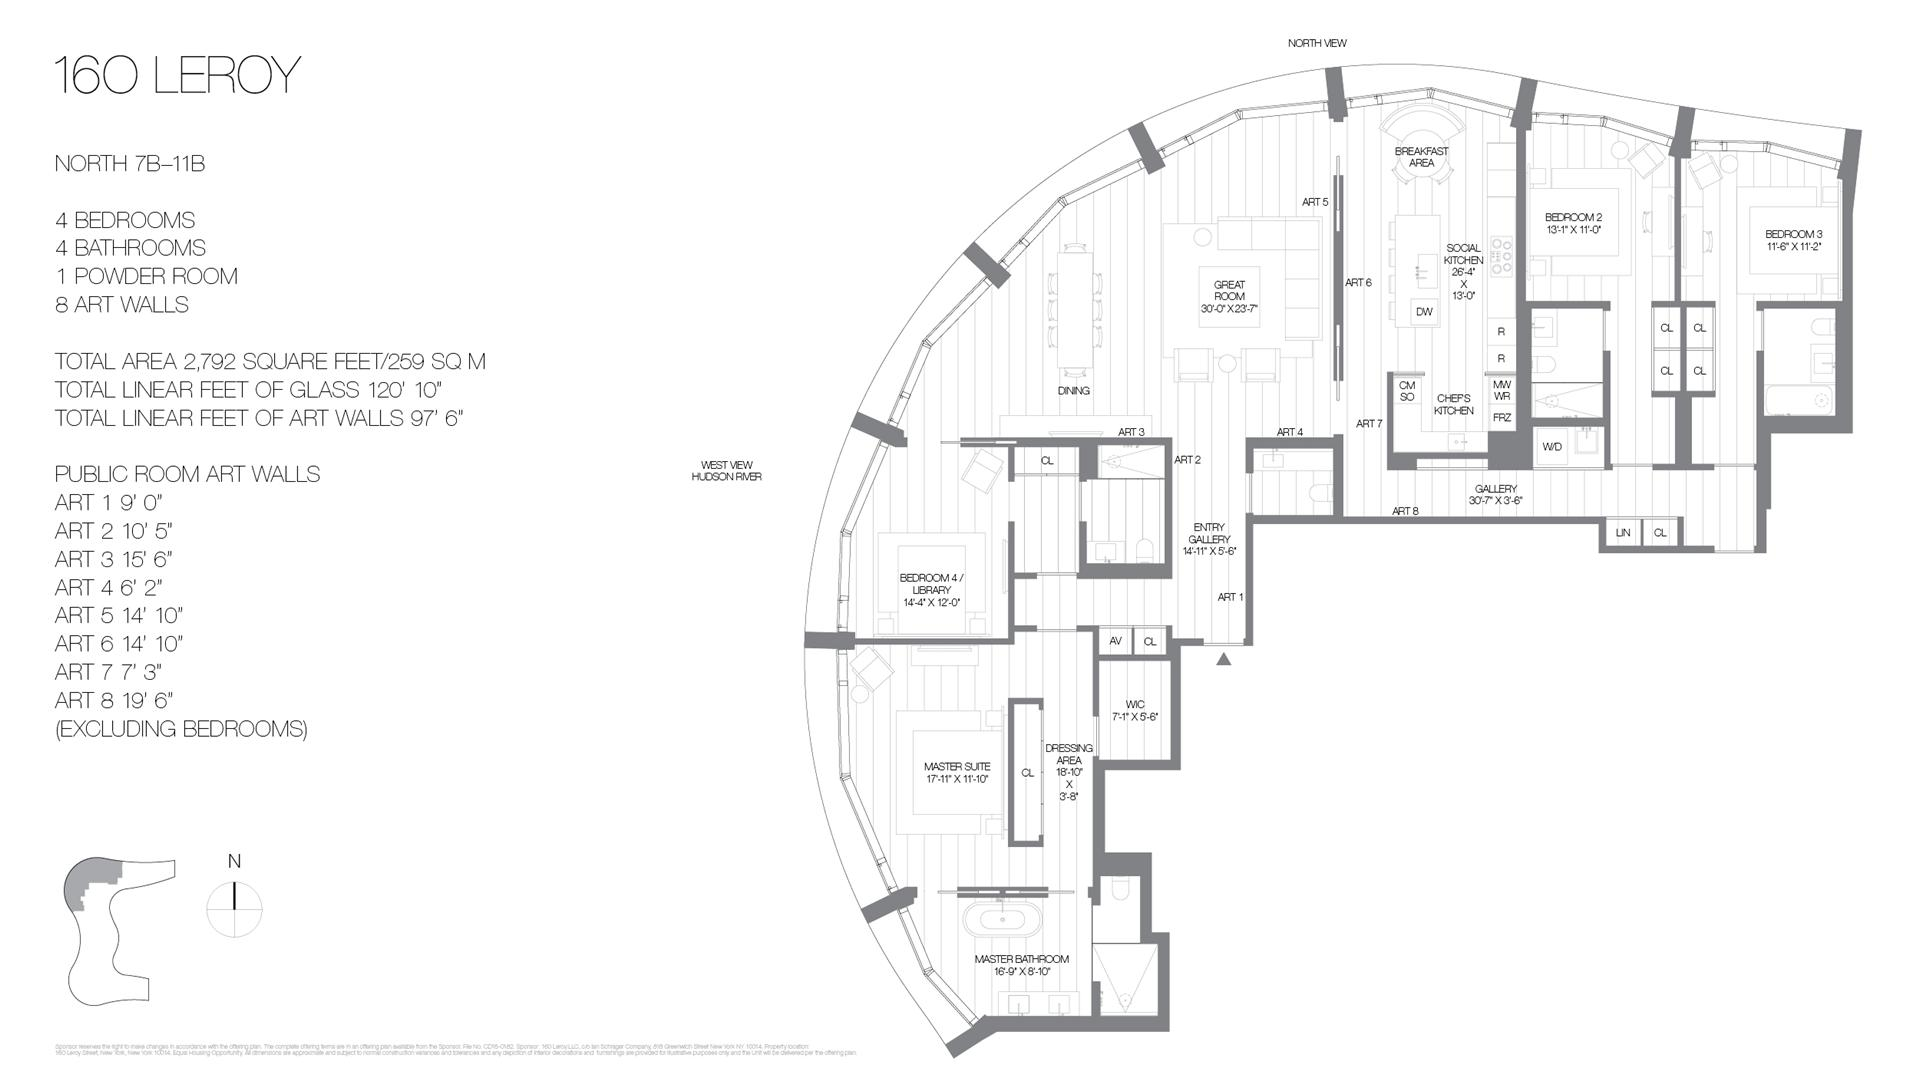 Floor plan of 160 Leroy St, NORTH10B - West Village - Meatpacking District, New York